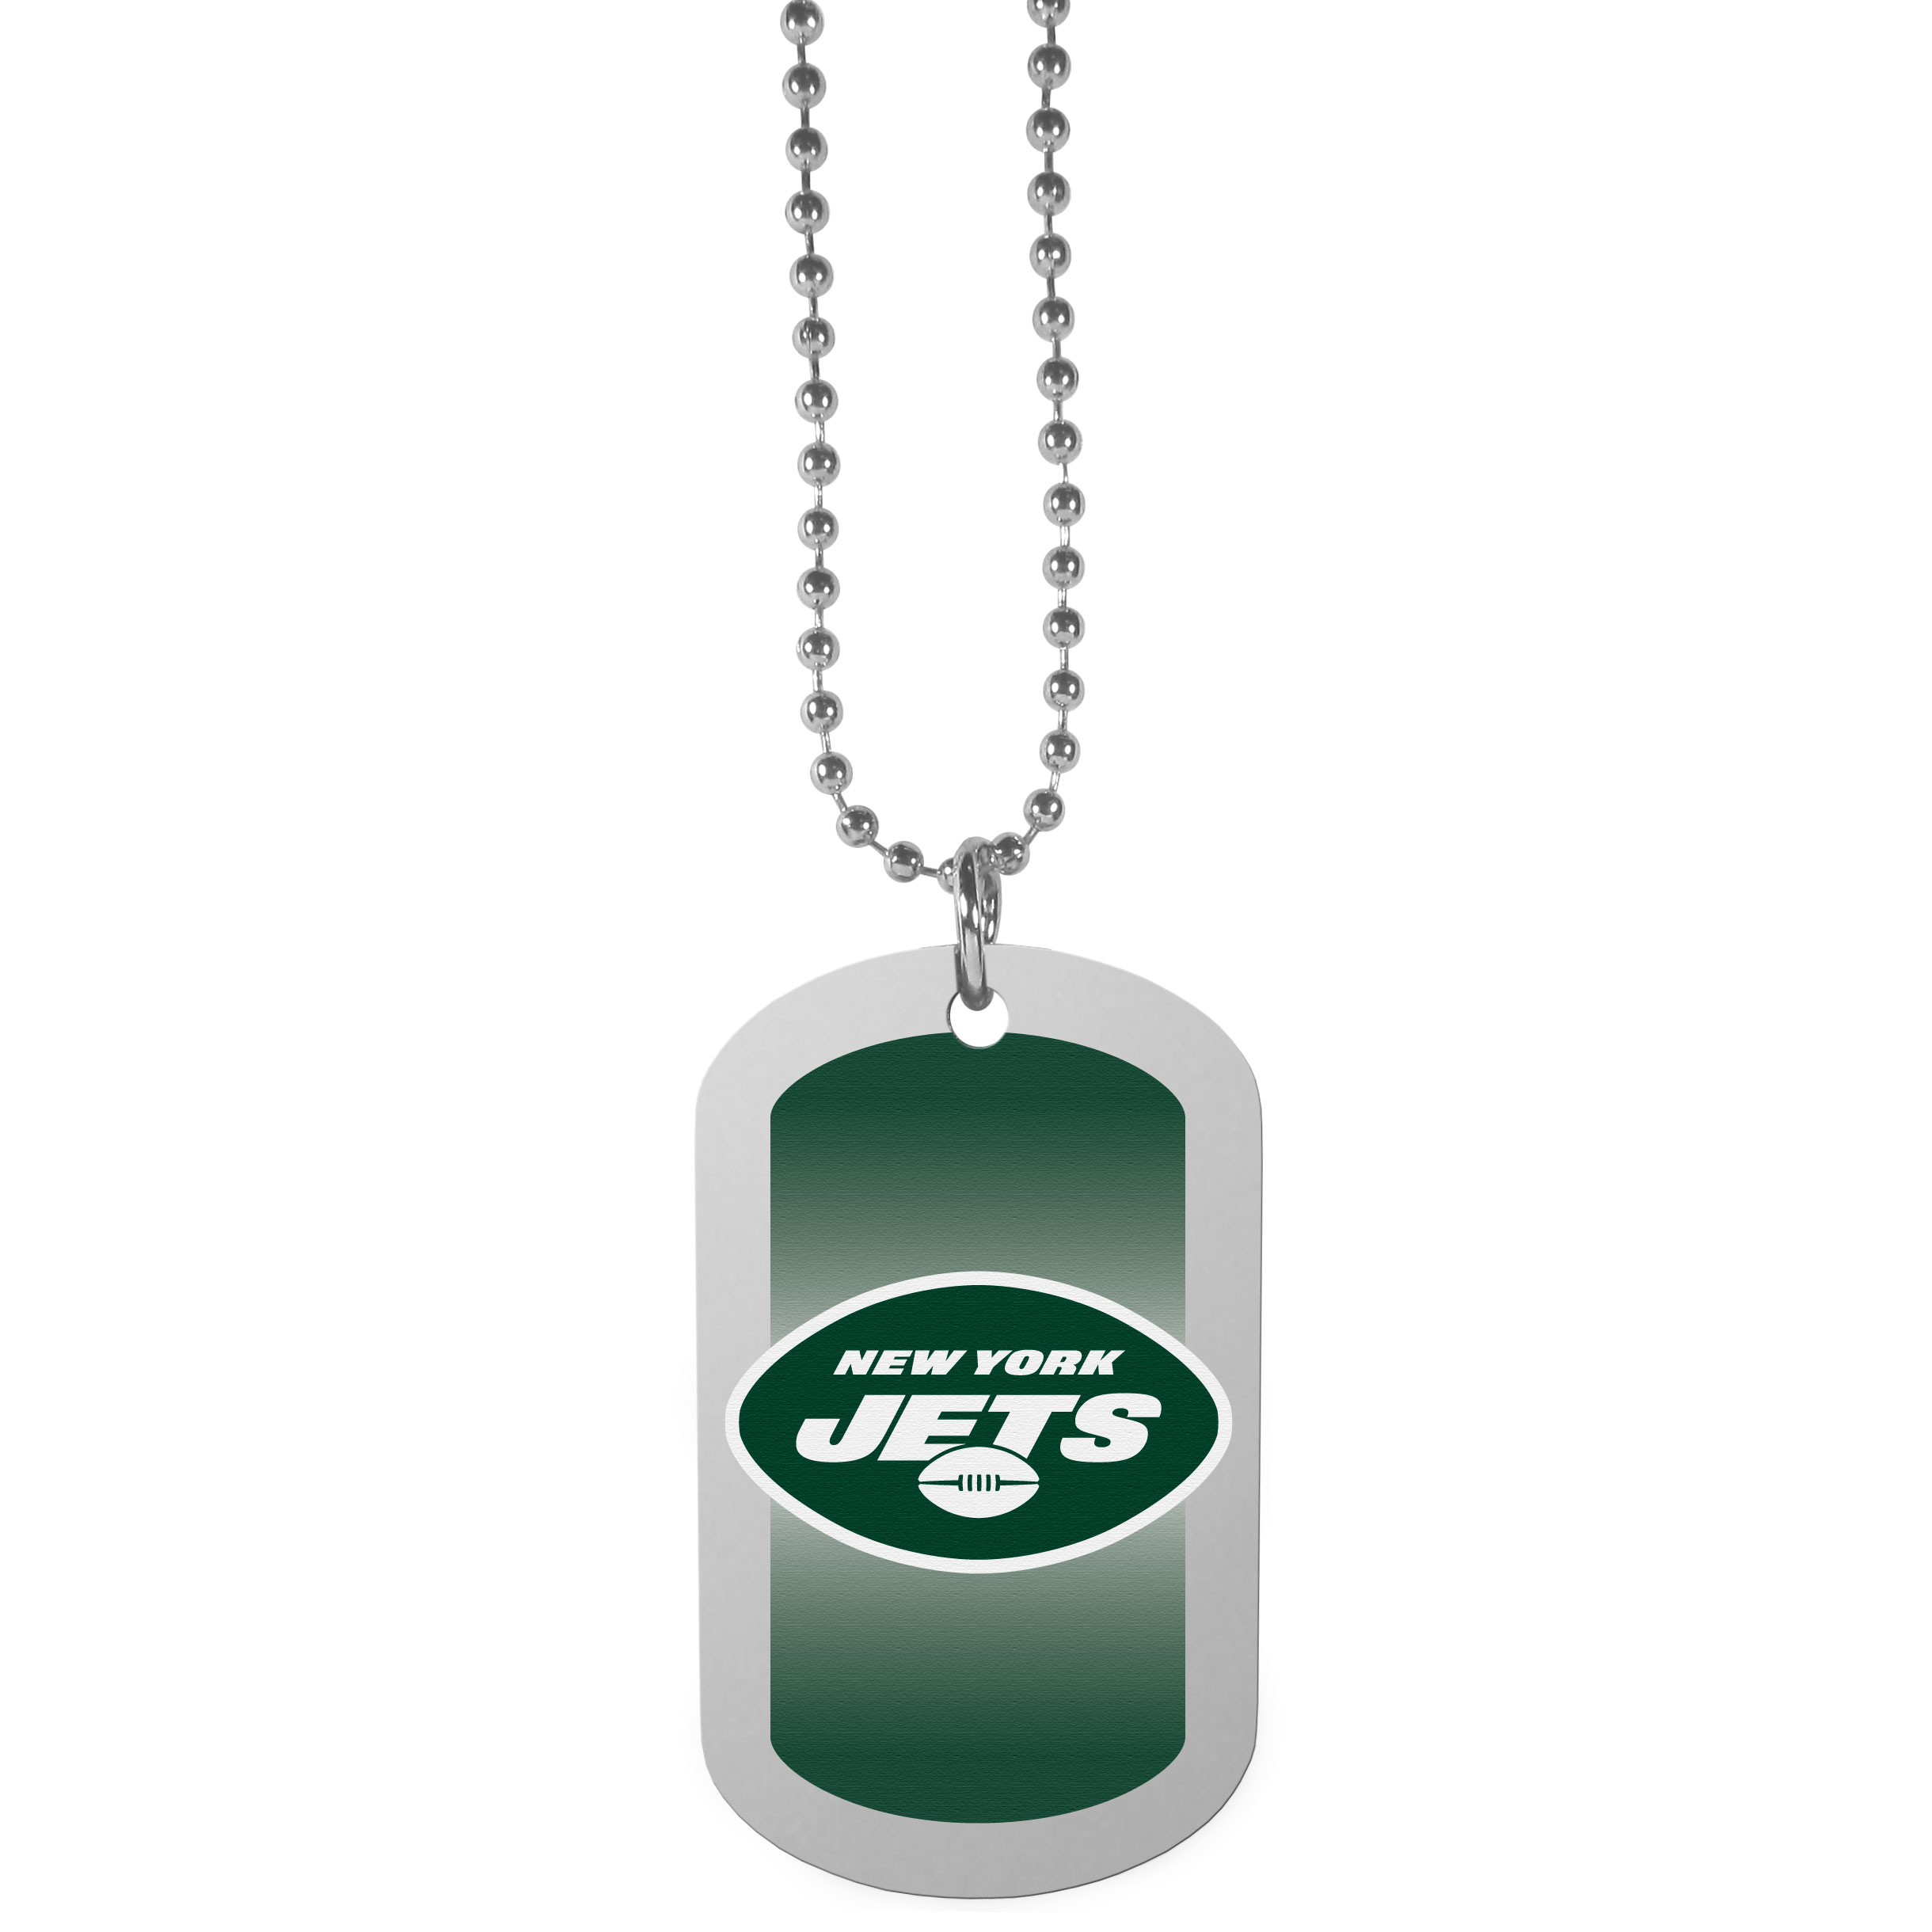 New York Jets Team Tag Necklace - Dog tag necklaces are a fashion statement that is here to stay. The sporty version of the classic tag features a gradient print in team colors featuring a full color team logo over a high polish tag to create a bold and sporty look. The tag comes on a 26 inch ball chain with a ball and joint clasp. Any New York Jets would be proud to wear this attractive fashion accessory.